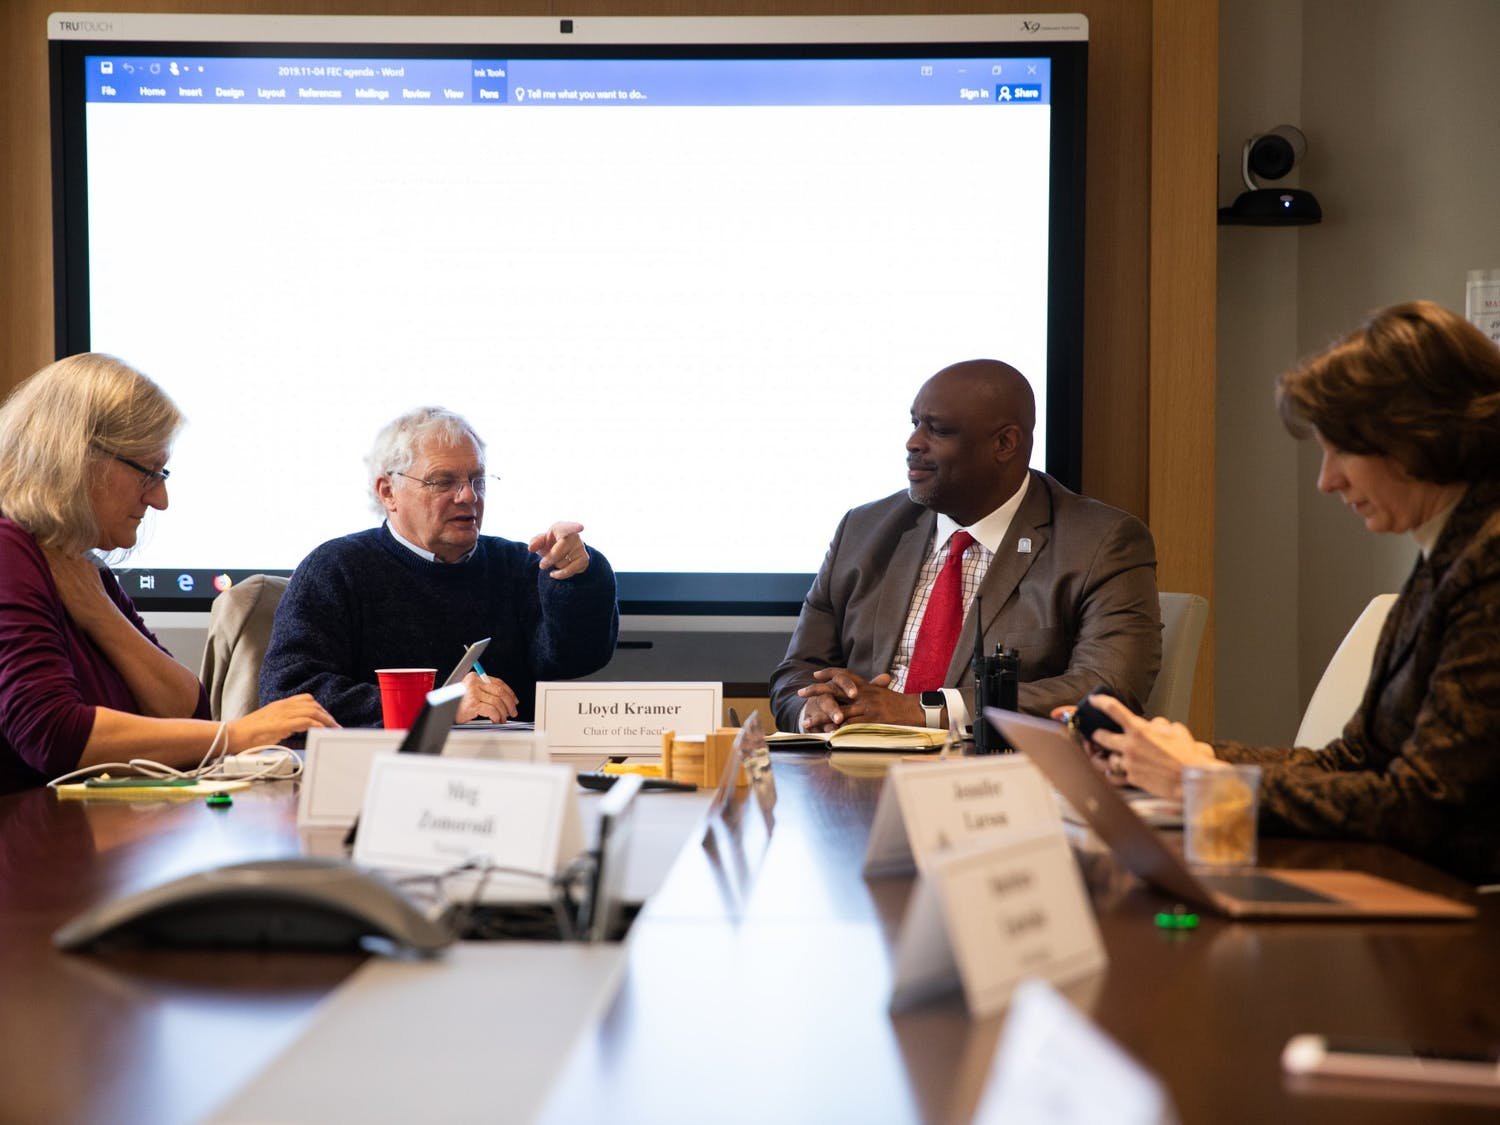 (From left) Faculty Governance University Program Specialist Helena Knego, Chairperson Lloyd Kramer, UNC Police Chief David Perry and Joy Renner convene in South Building for a Faculty Executive Committee meeting to discuss campus safety measures in the wake of Perry's appointment as chief on Monday, Nov. 4, 2019. Perry emphasizes a need for the police to build a rapport with the community.